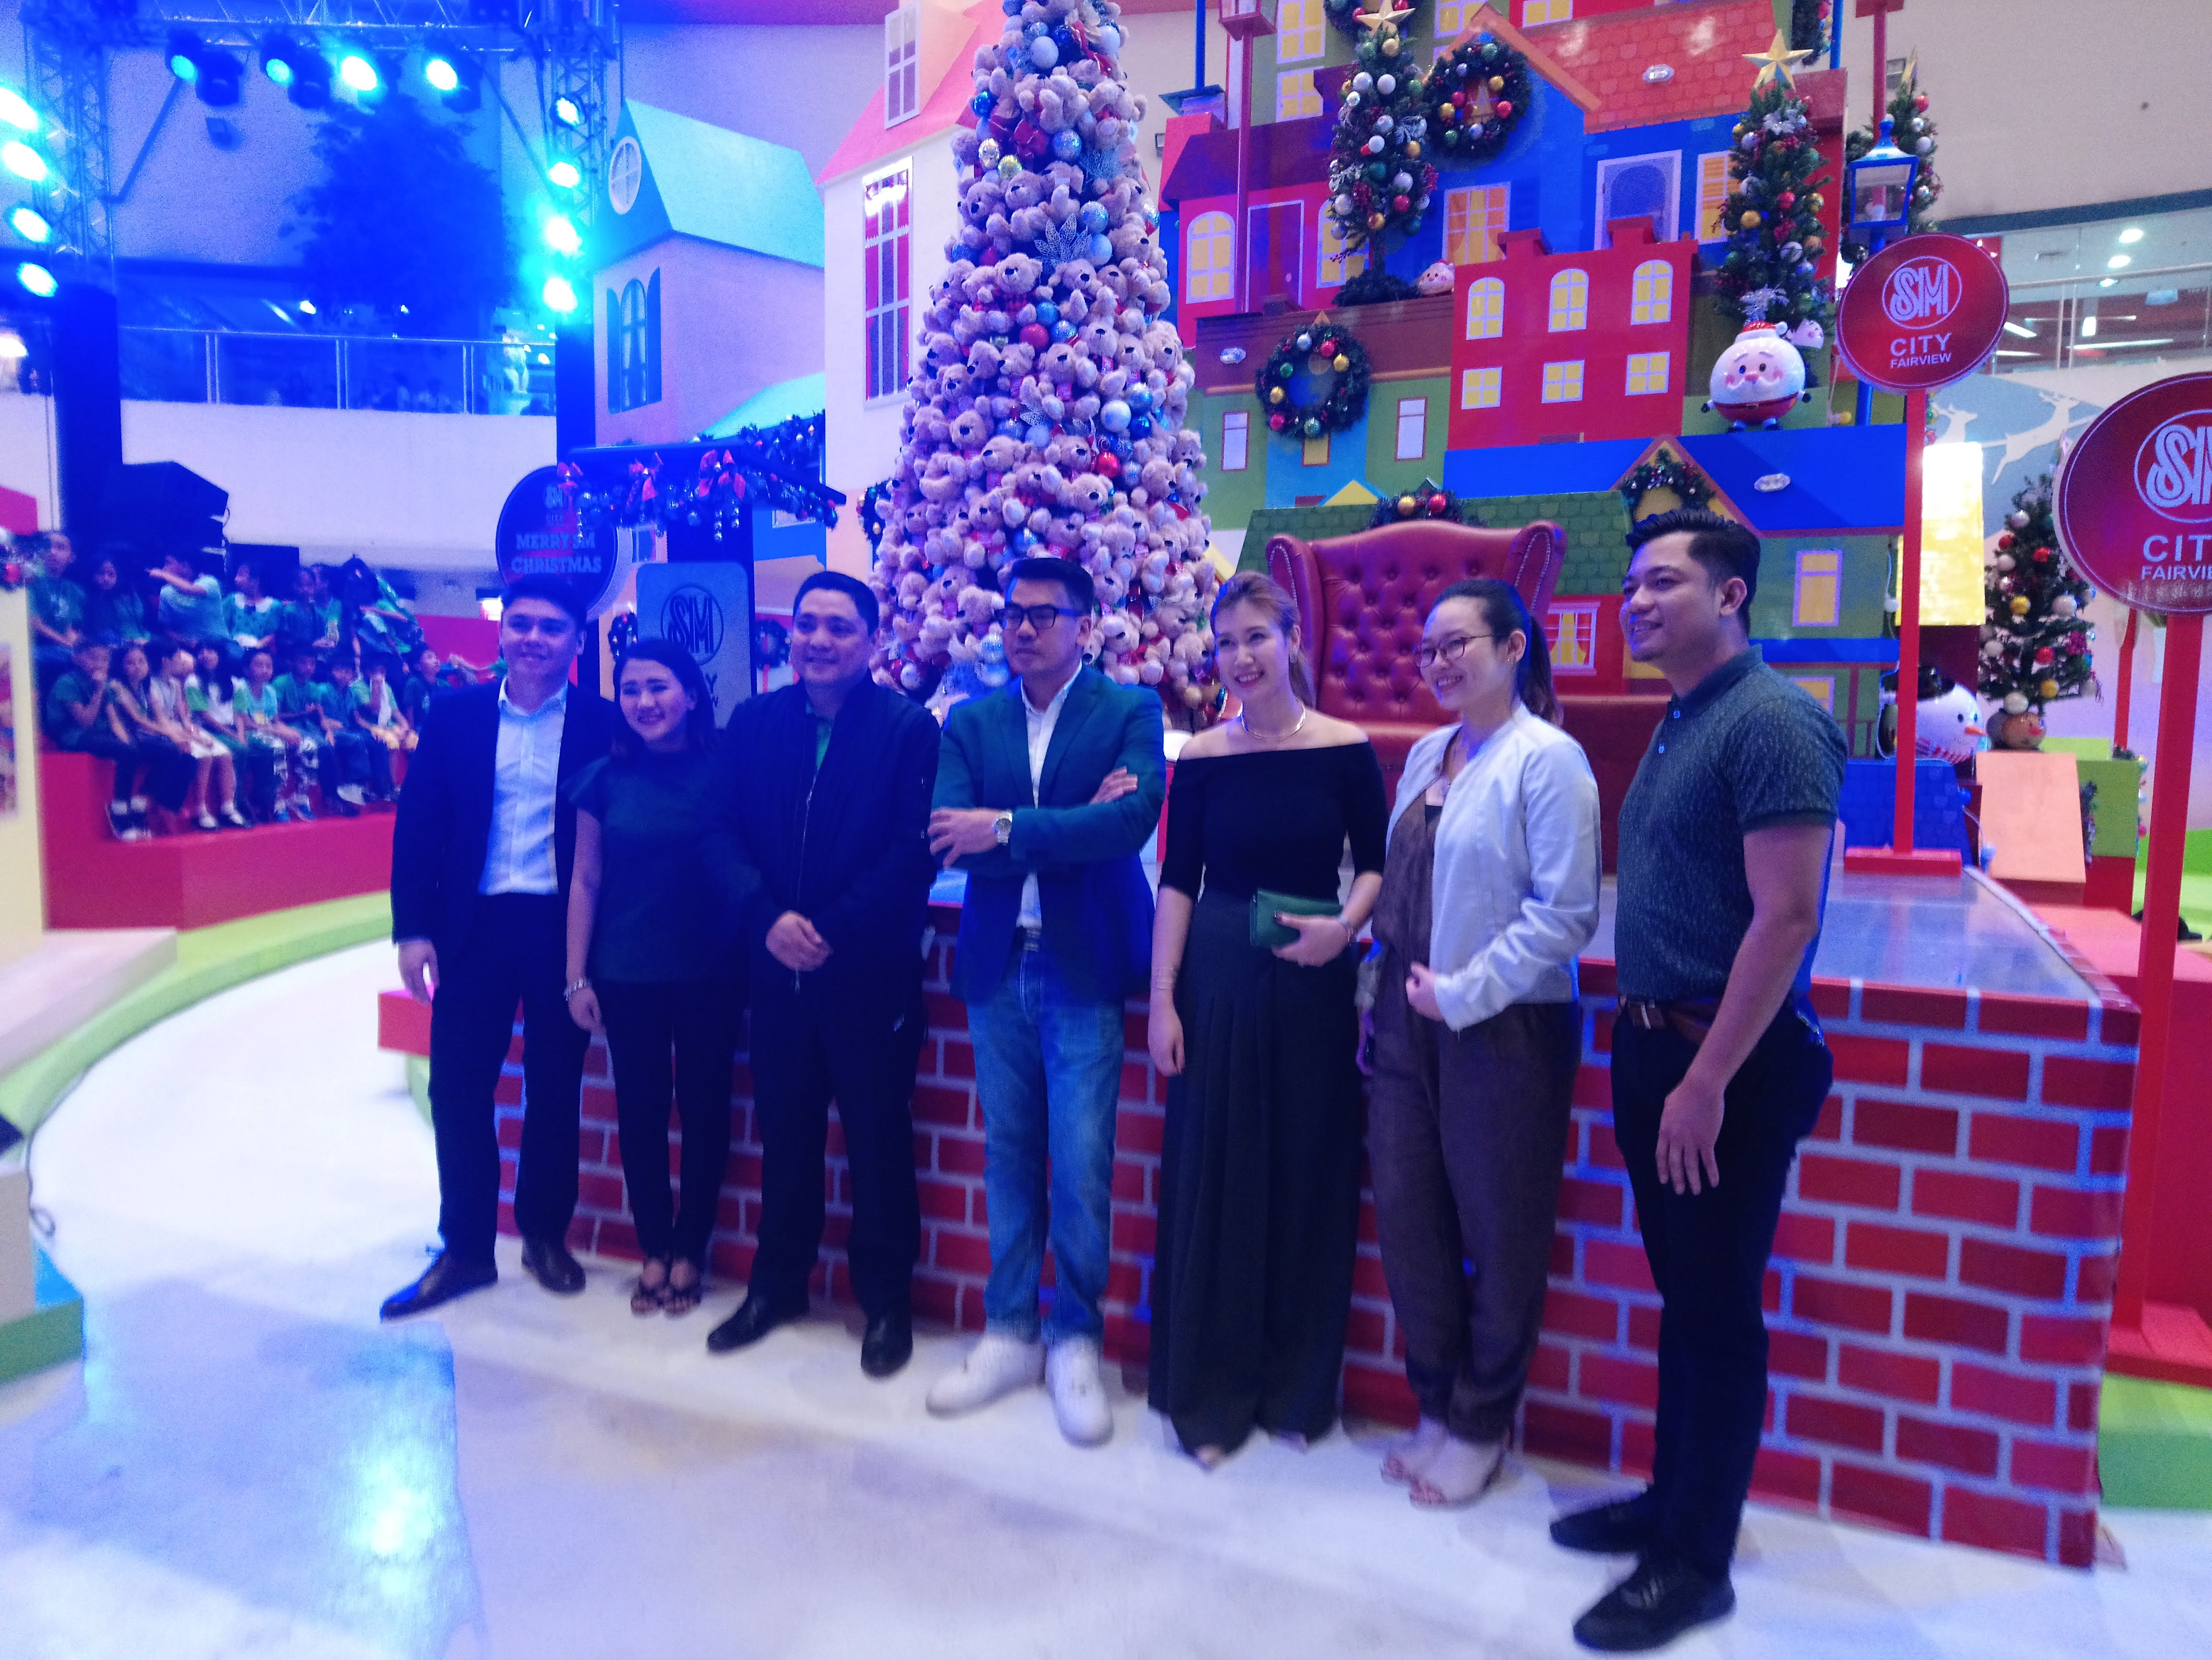 sm-hometown-holiday-group-photo